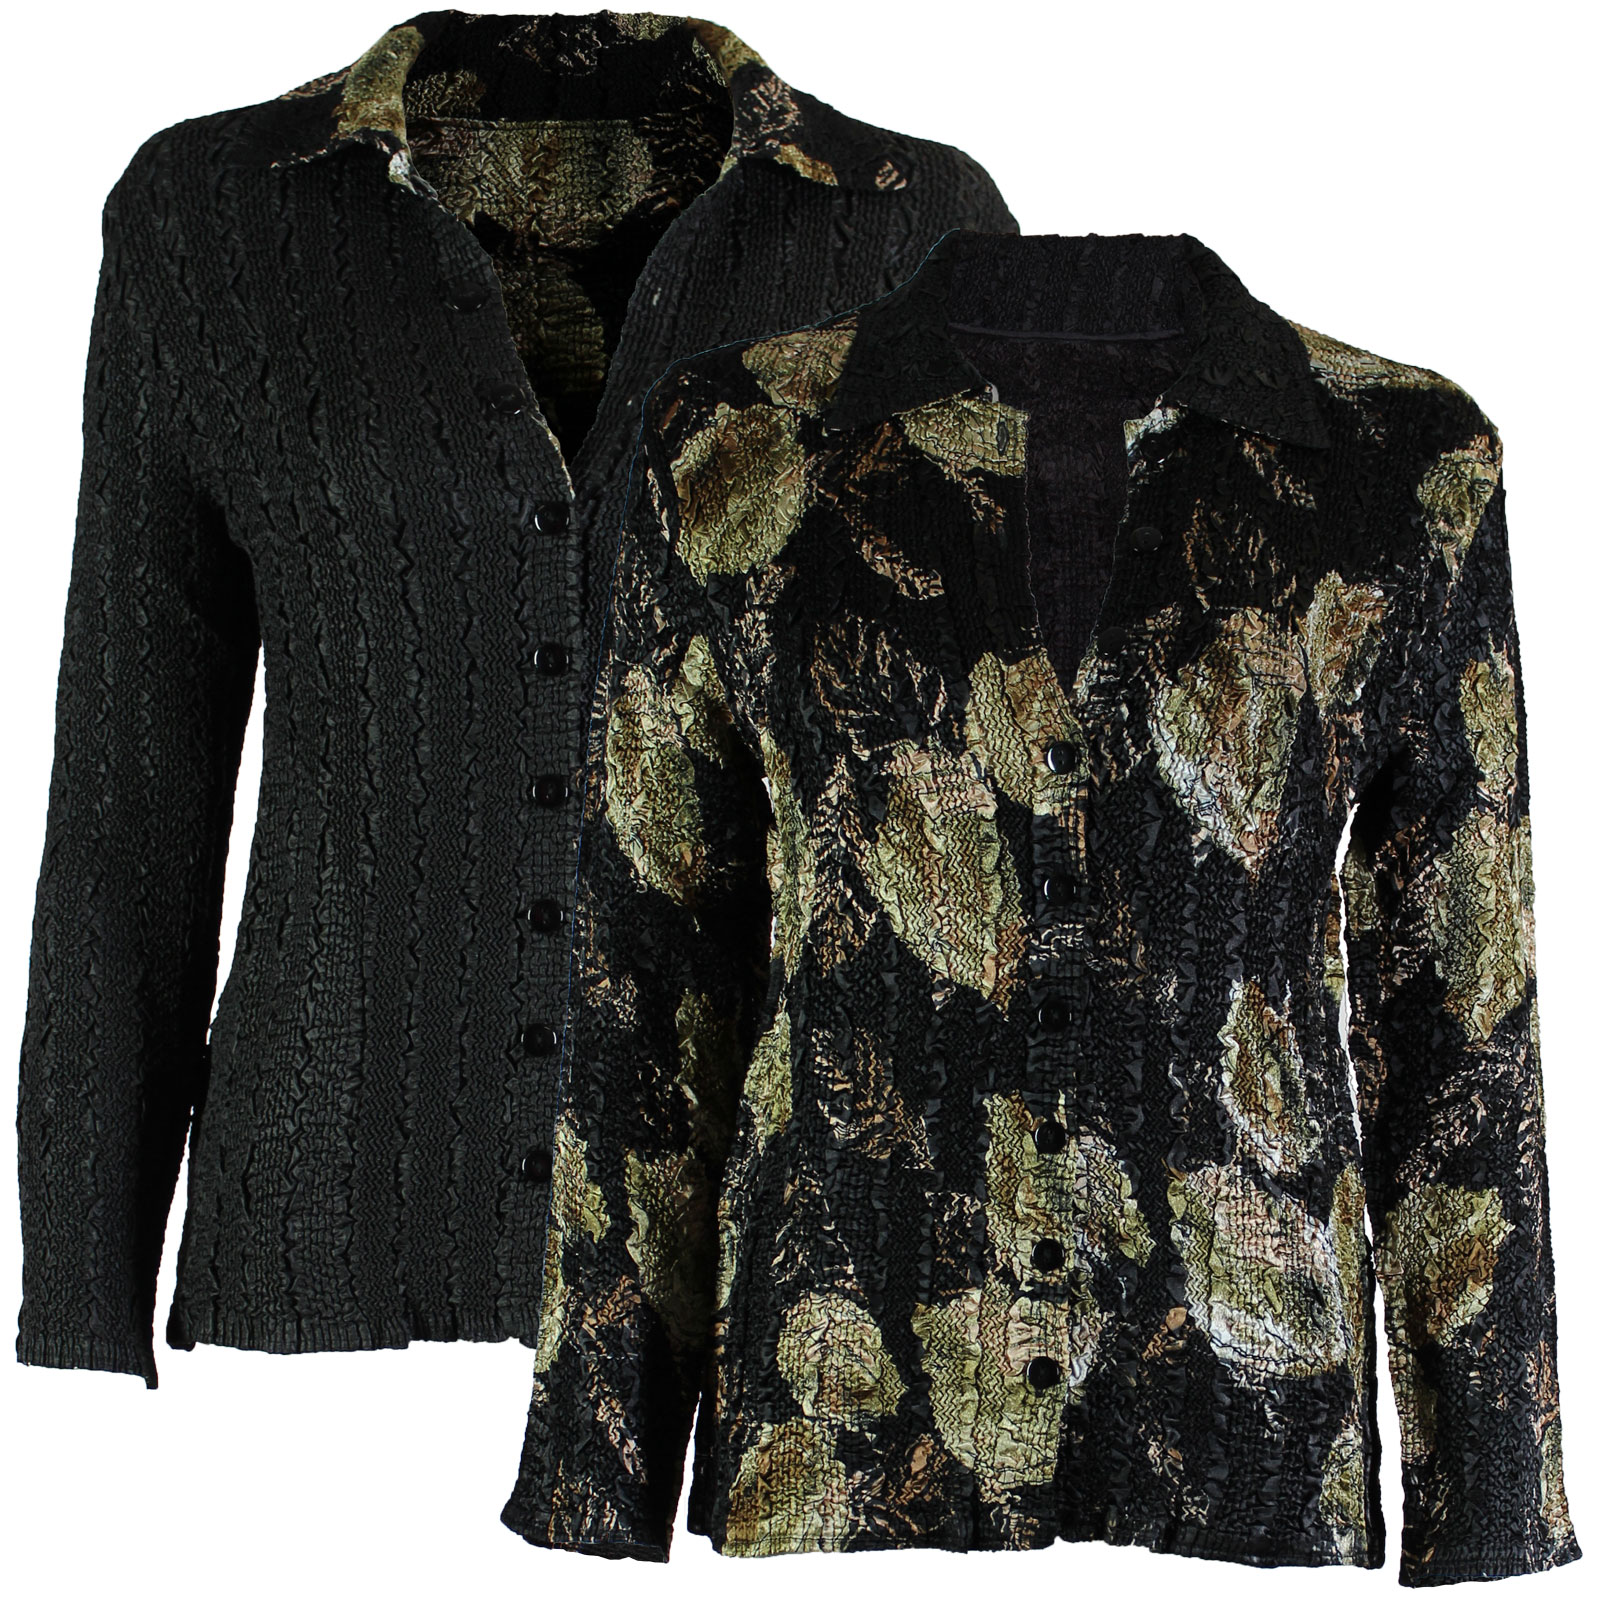 Wholesale Magic Crush - Reversible Jackets Black with Gold Leaves reverses to Solid Black #1048 - 1X-2X